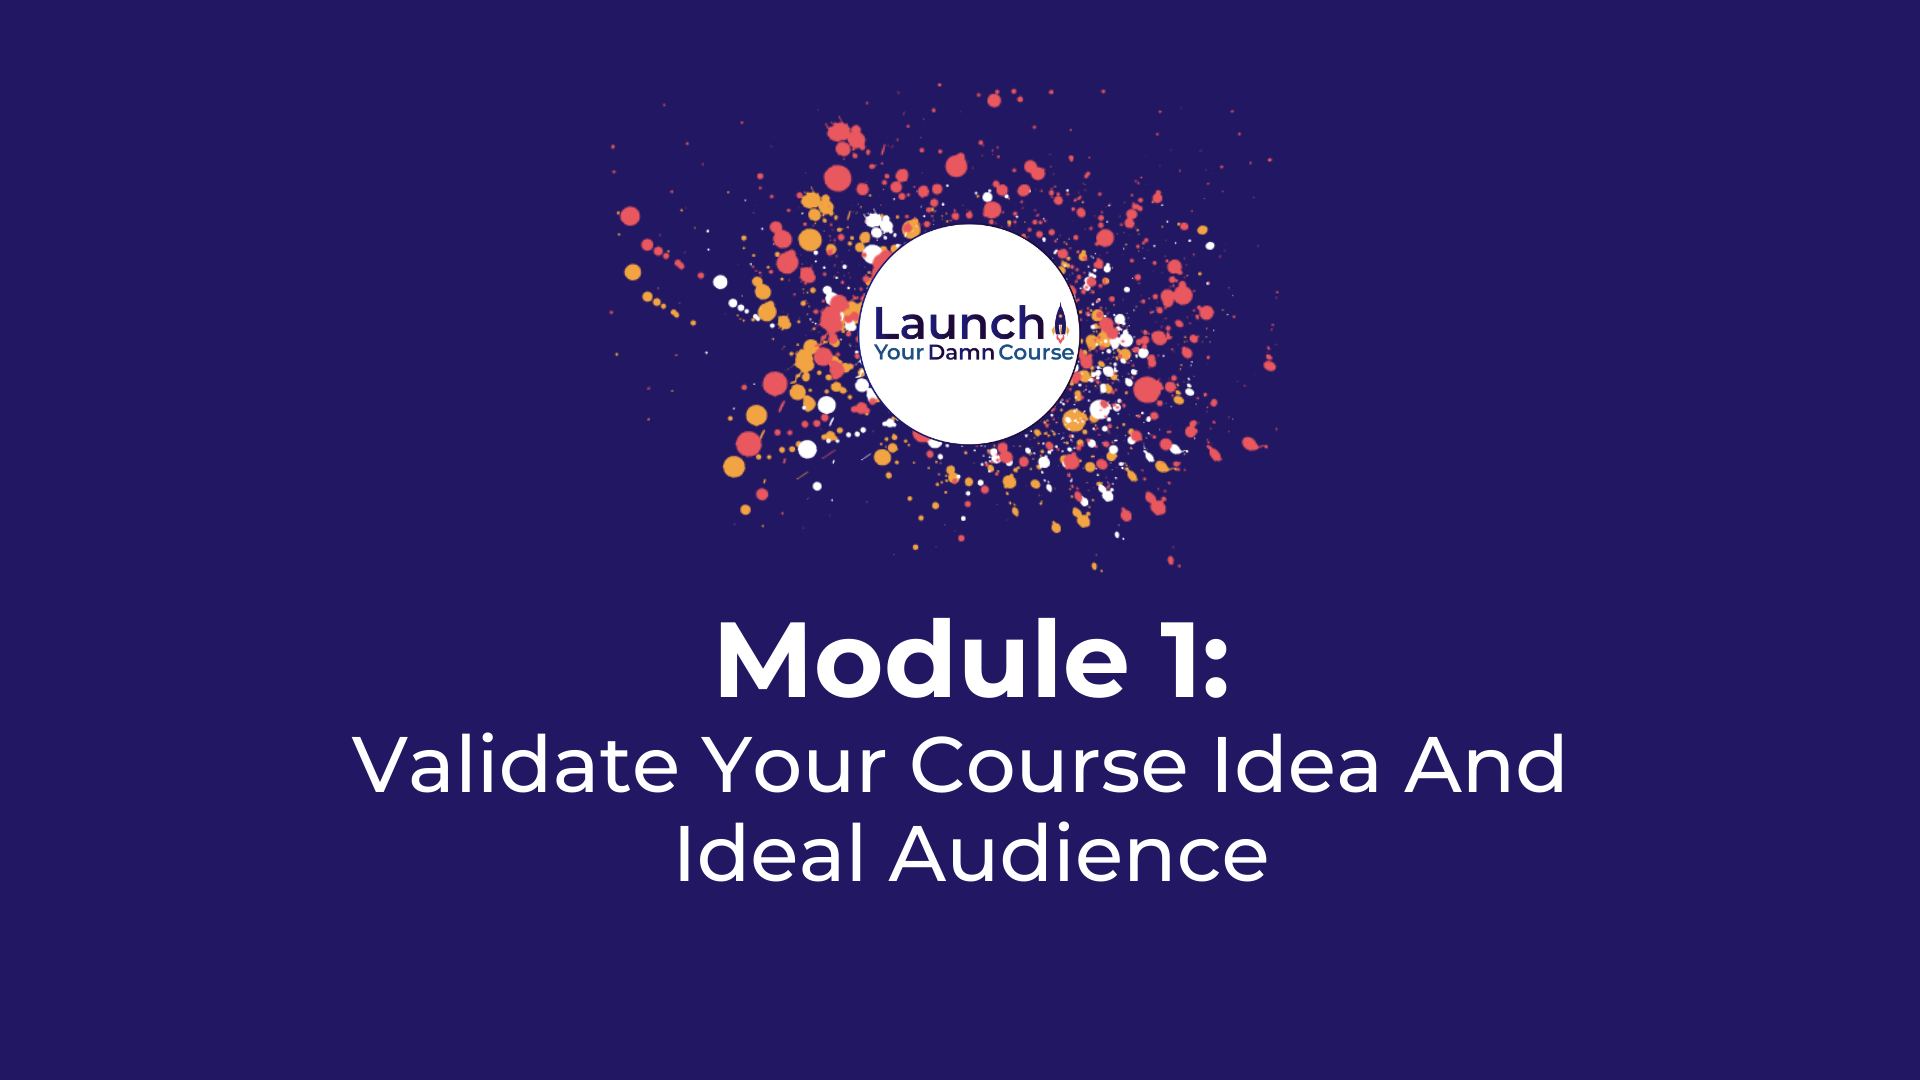 Module 1 - Validate Your Course Idea And Ideal Audience